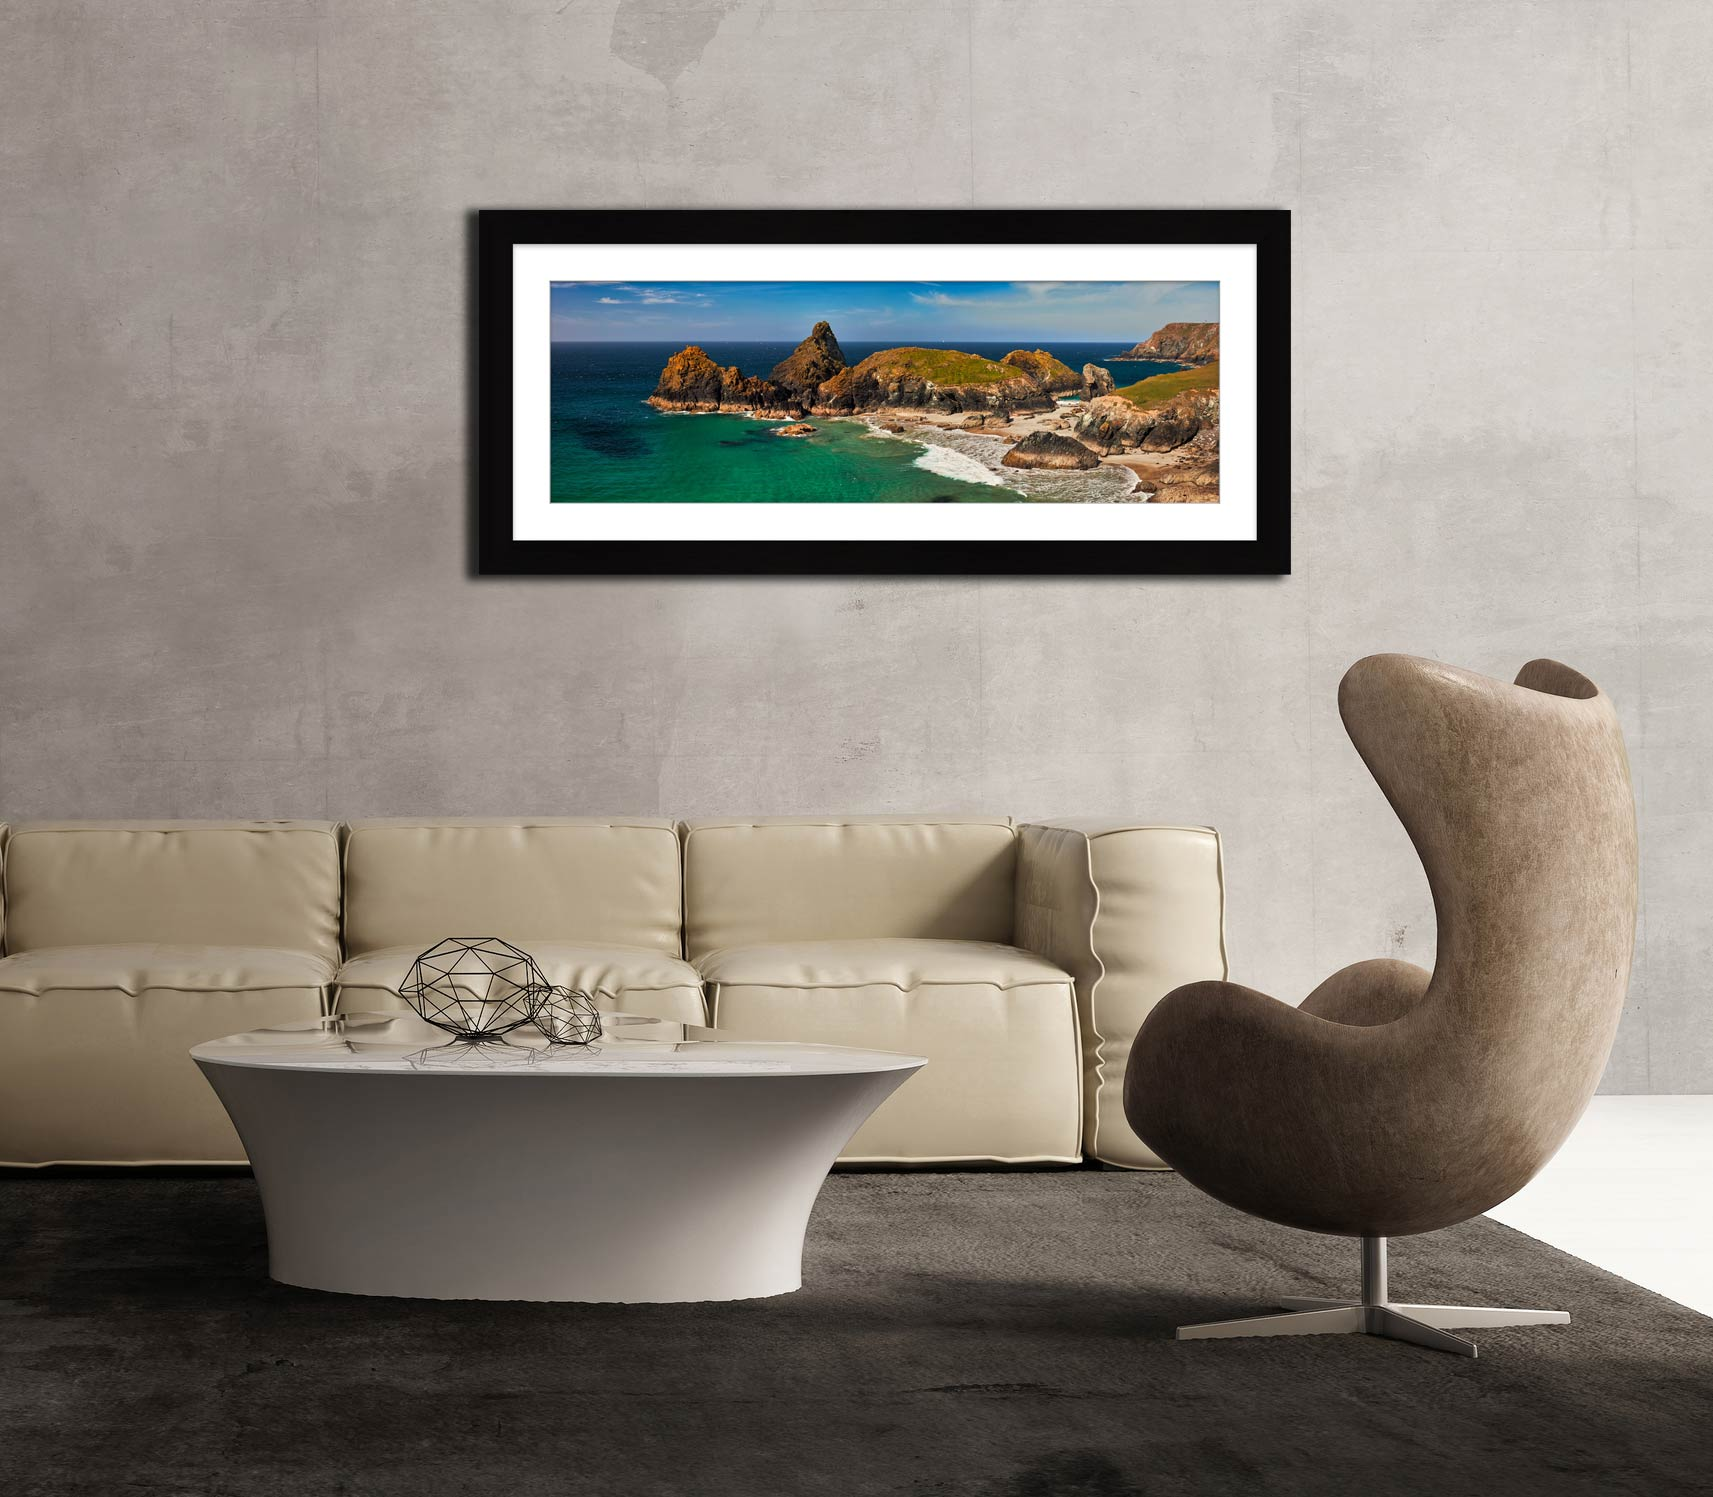 Godrevy Autumn Sunset - Framed Print with Mount on Wall